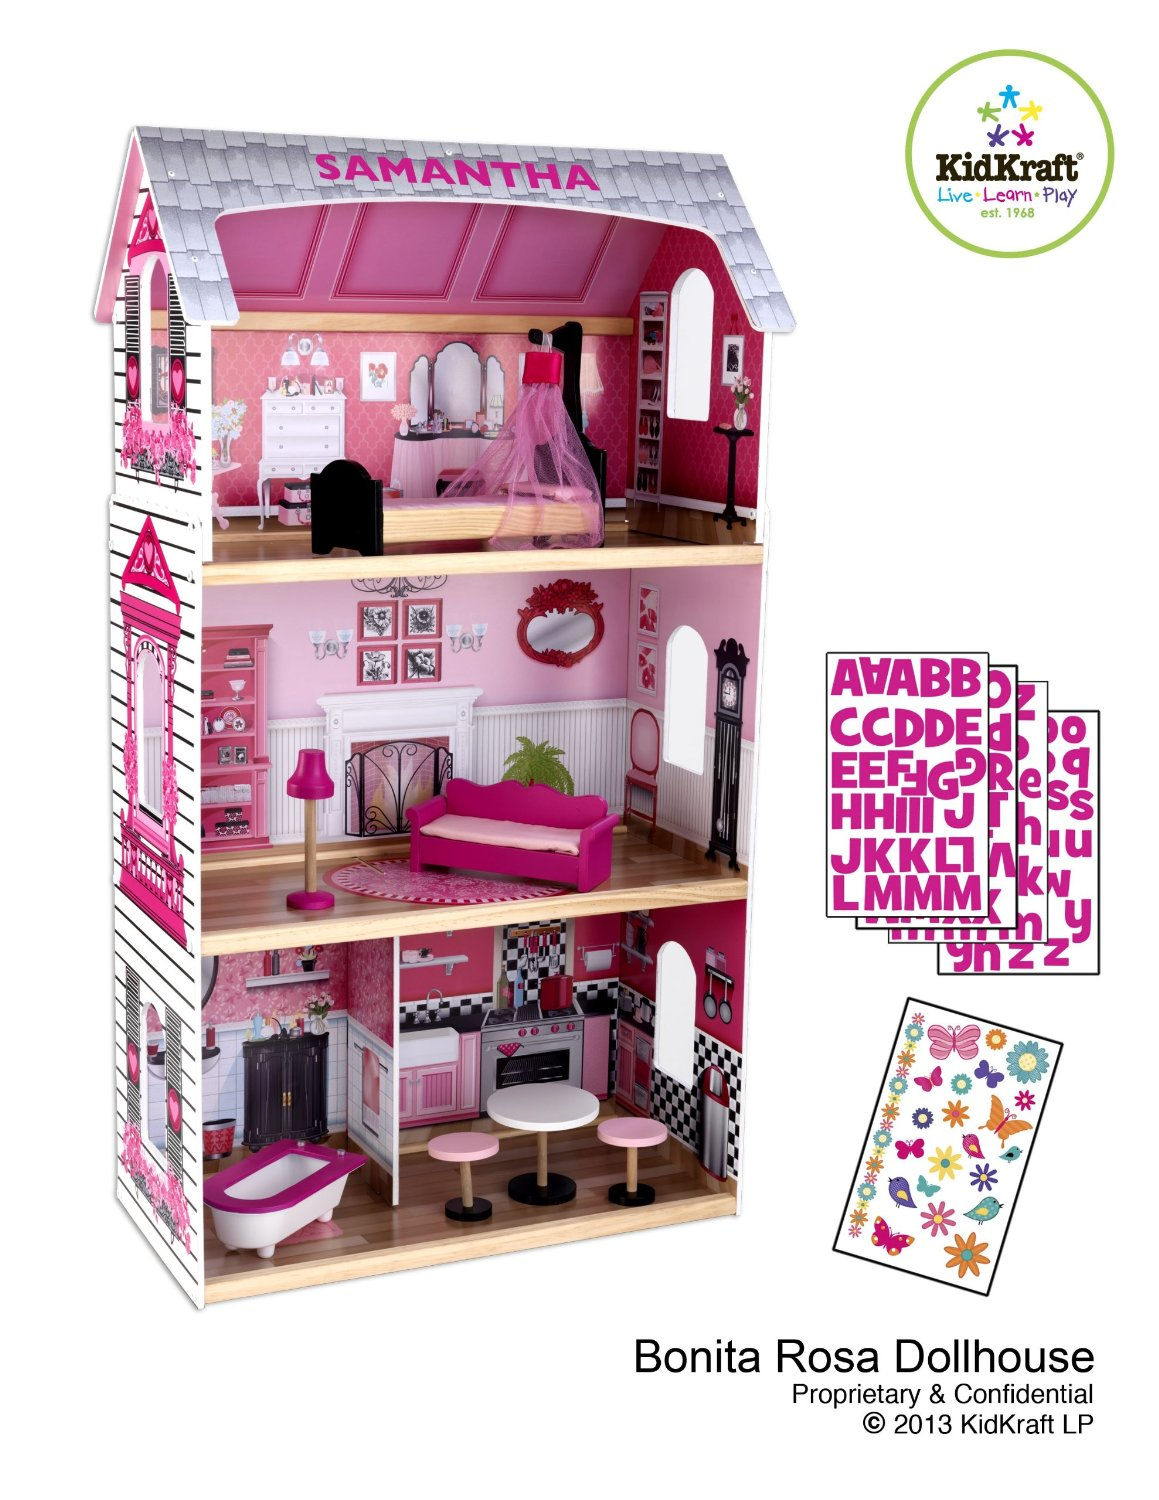 Charming Kidkraft Dollhouse Made Of Wood In Pink Theme With Triple Tier Design For Nursery Decor Ideas